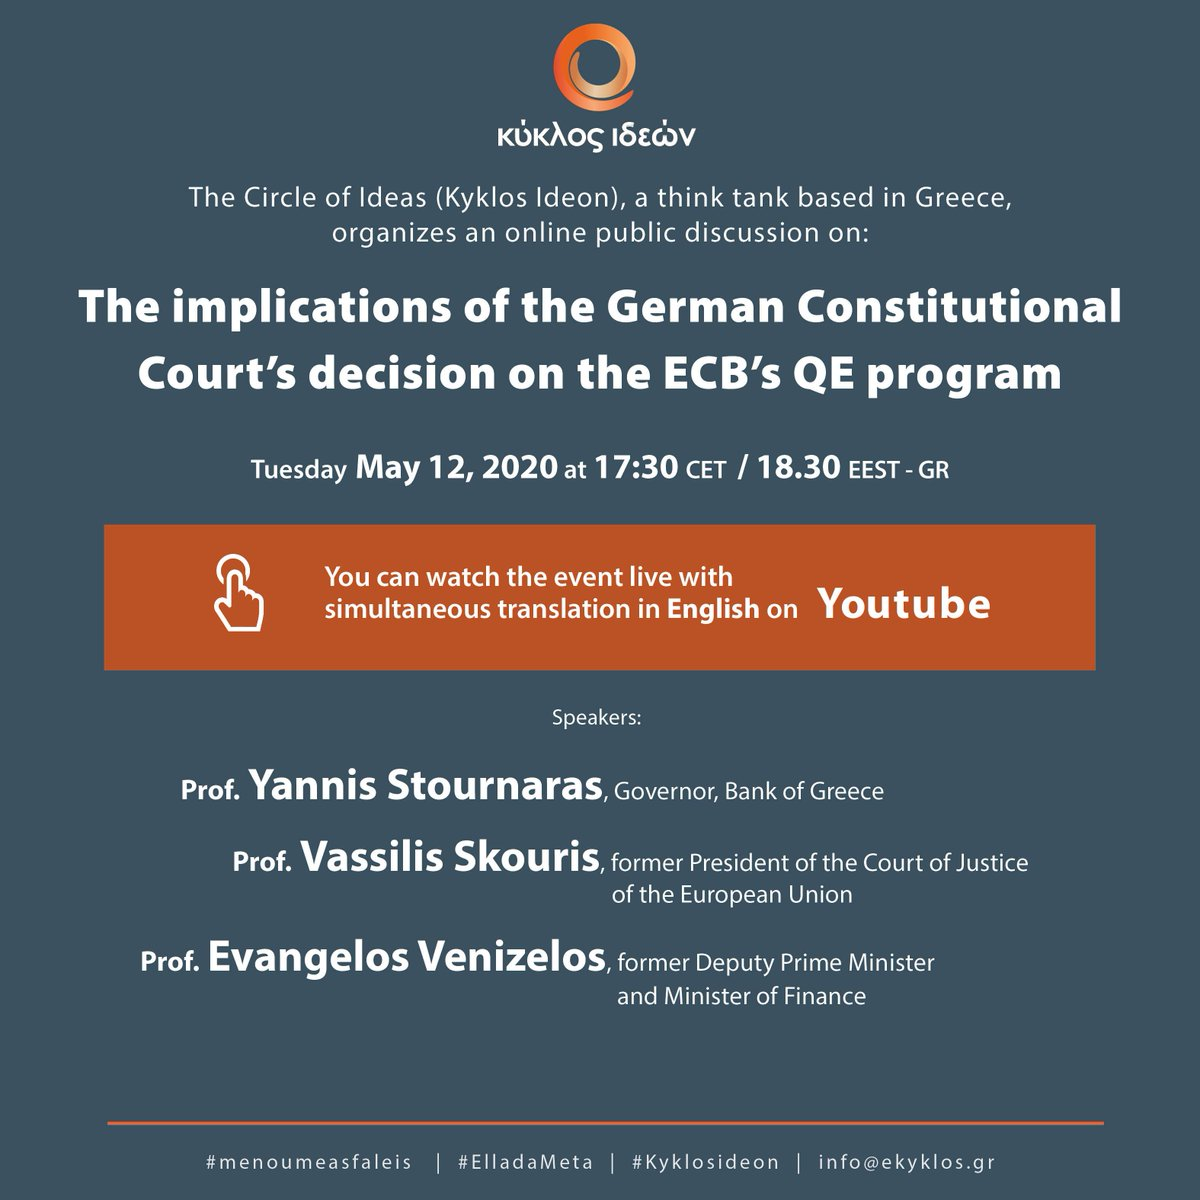 """""""The implications of the German Constitutional Court's decision on the ECB's QE program"""" Tuesday, May 12, 2020, at 17:30 CET / 18:30 EEST-GR  Language: Greek You can watch the event live with simultaneous translation in English on YouTube https://t.co/w3KmJi8UTJ https://t.co/TjD5aPxgZq"""